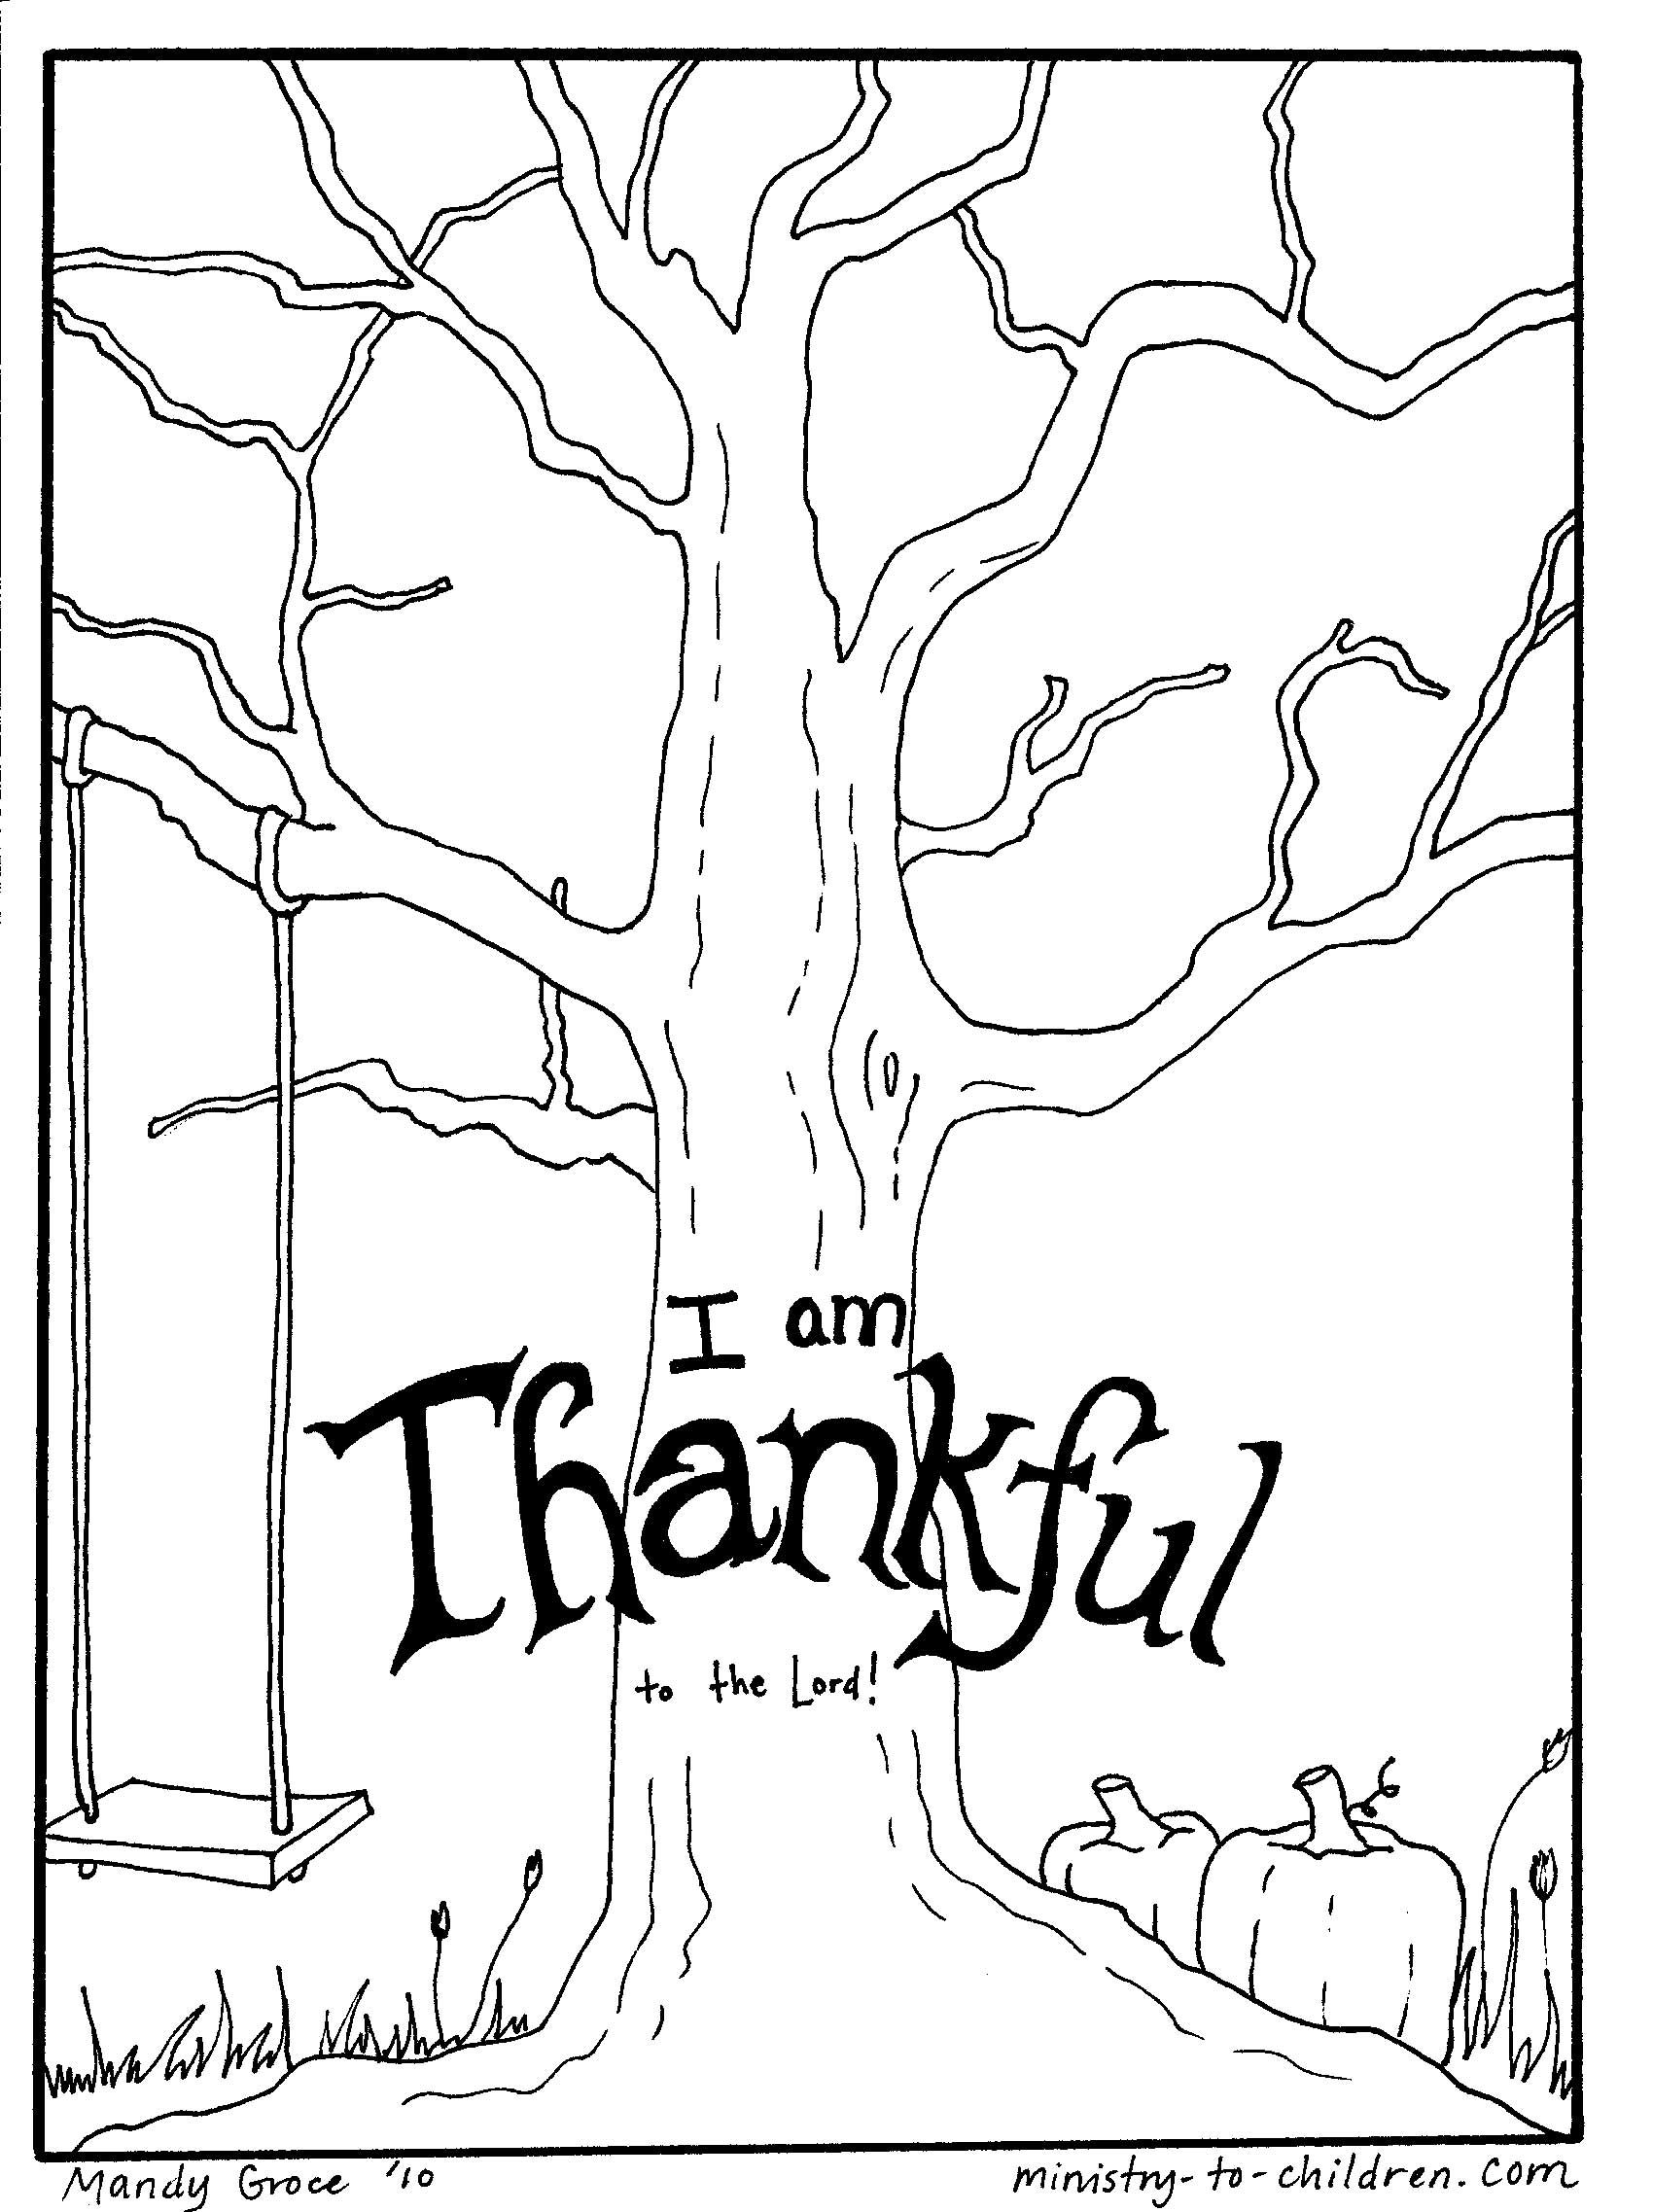 preschool thanksgiving coloring pages Download-thanksgiving coloring page use with foam leaves for 3s 4s K 17-o